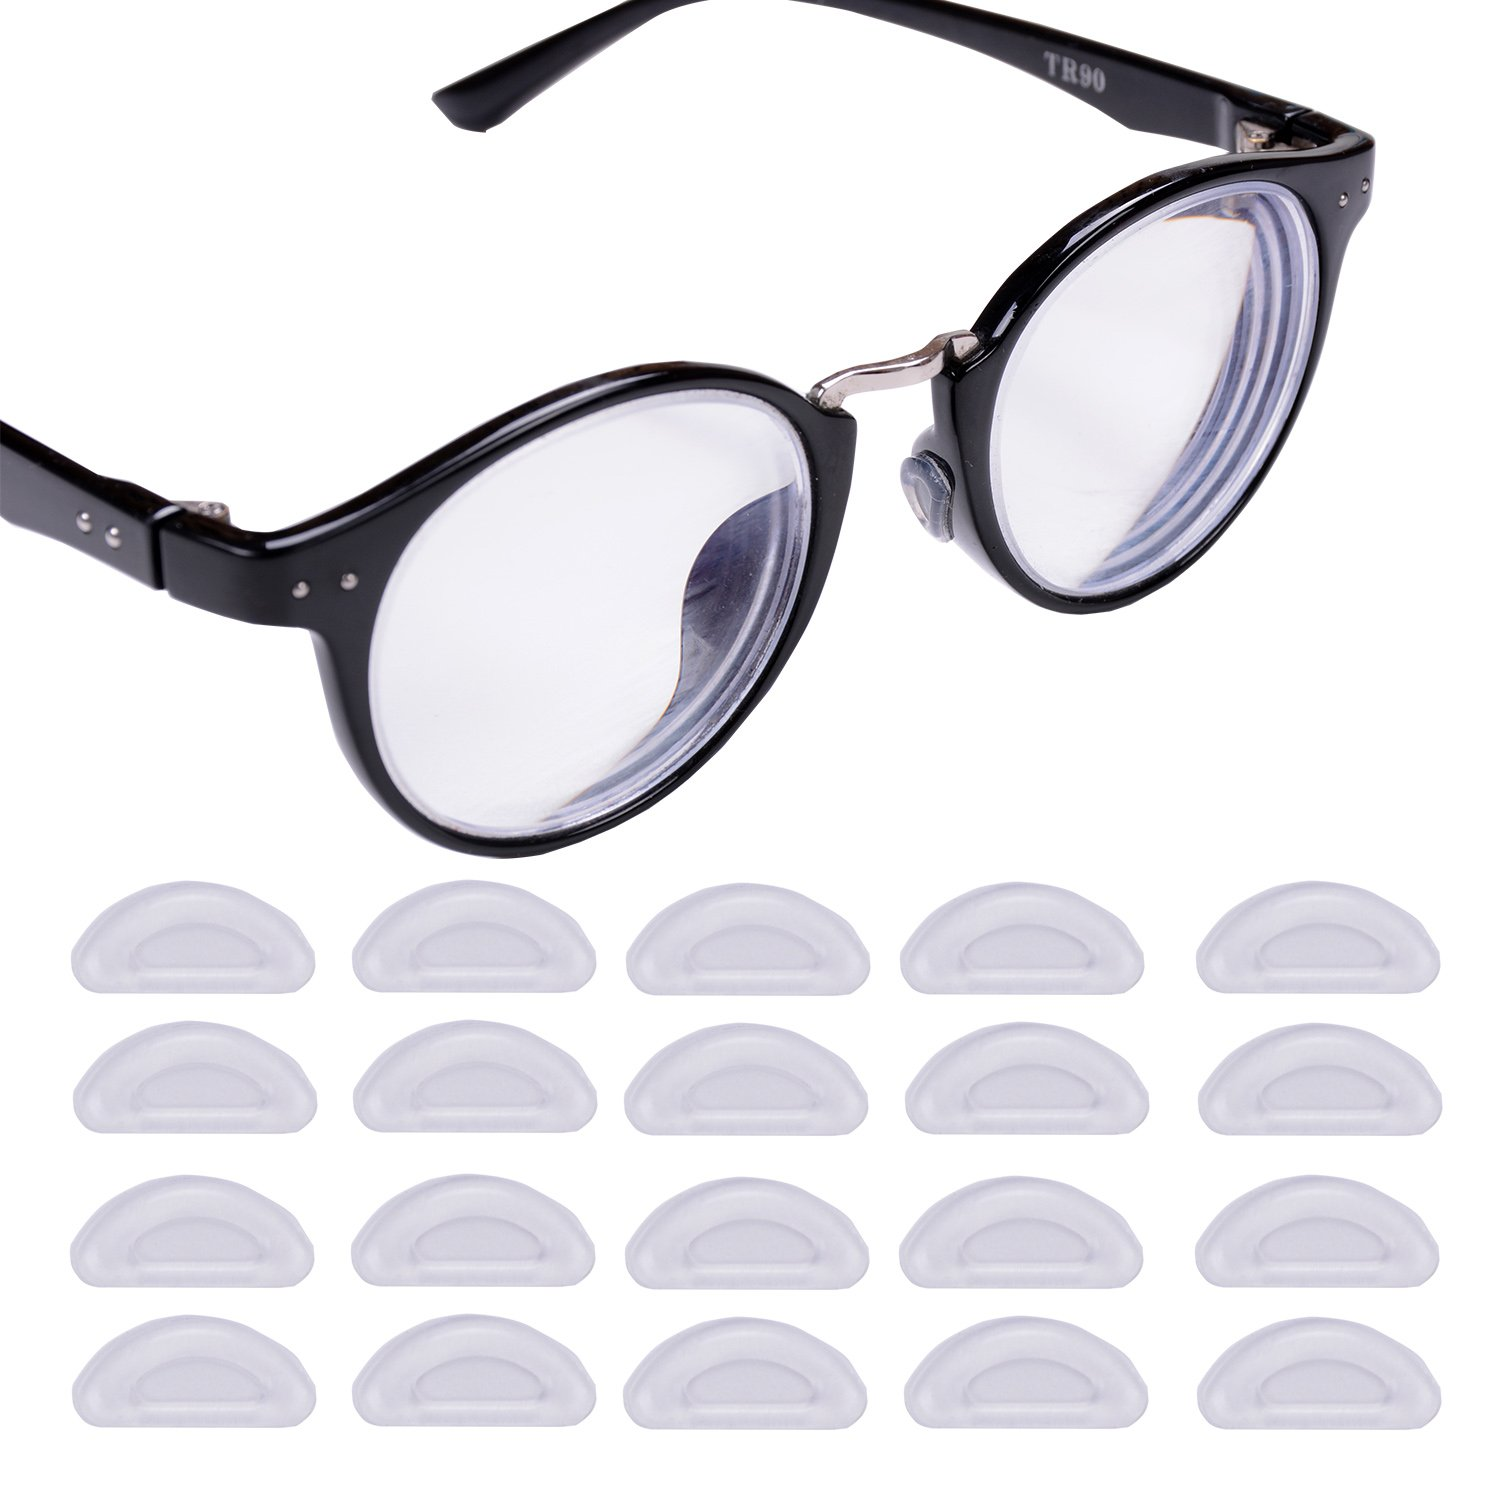 Eyeglasses Sunglasses Eyeglass Nose Pads for Glasses Clear 150 Pairs